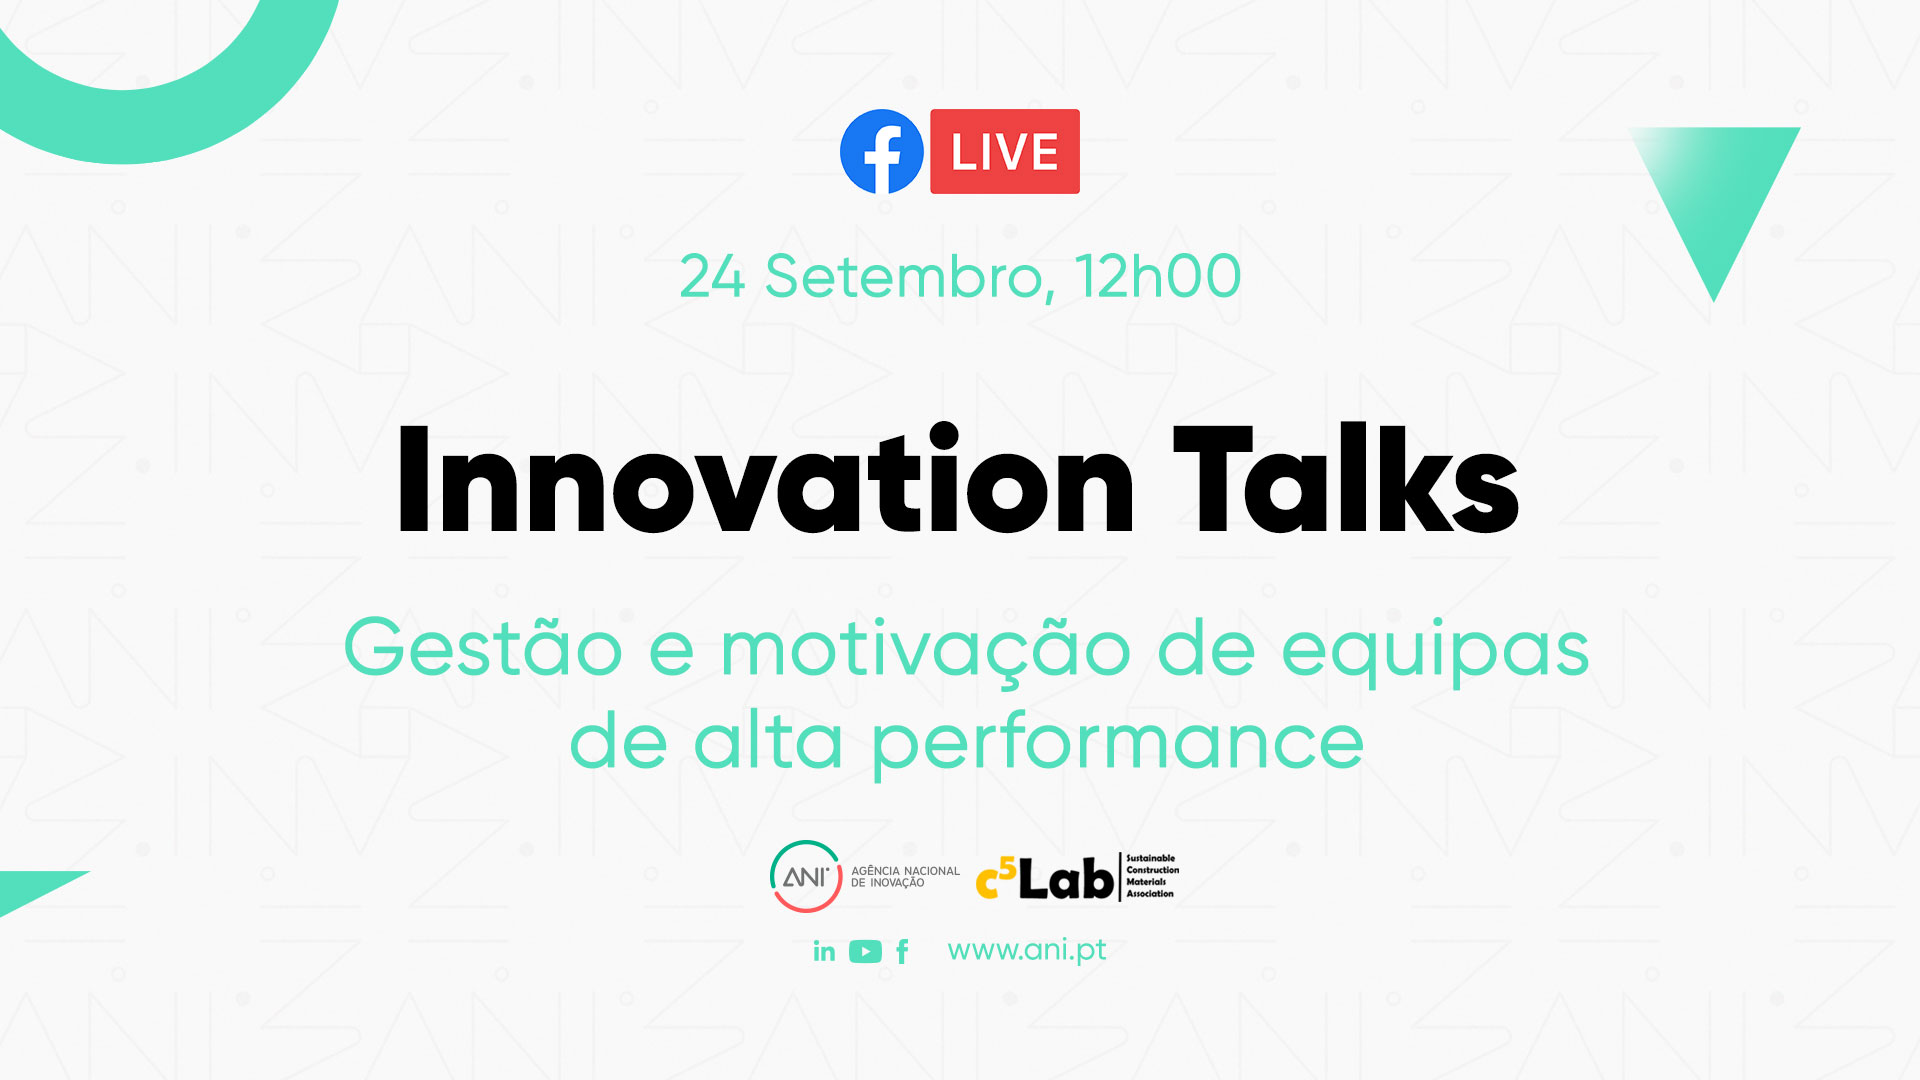 Innovation Talks: Gestão de equipas de alta performance em debate